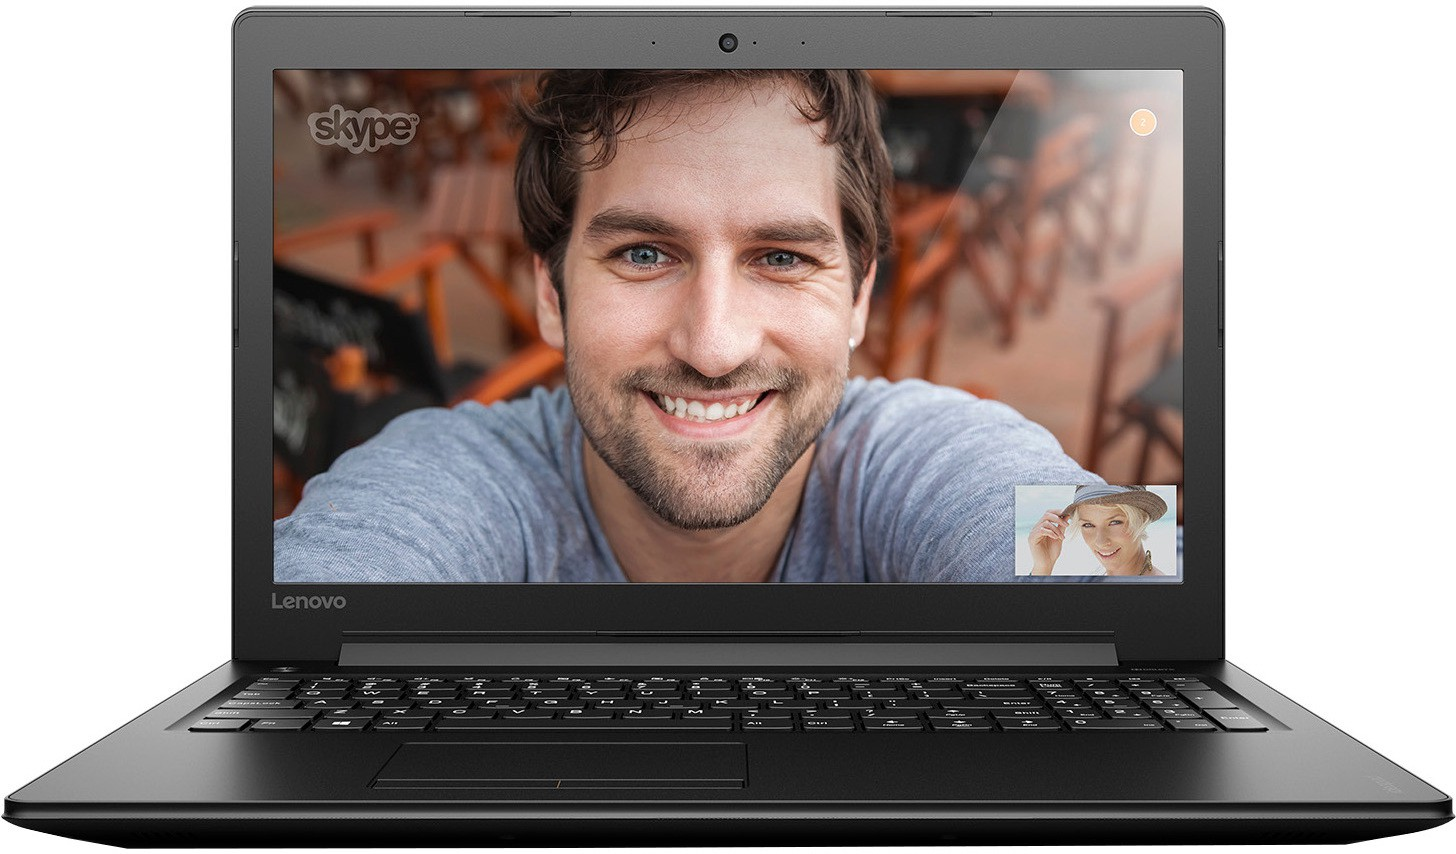 Deals - Jodhpur - From ₹ 4666/month <br> Lenovo Core i5 Laptops<br> Category - computers<br> Business - Flipkart.com